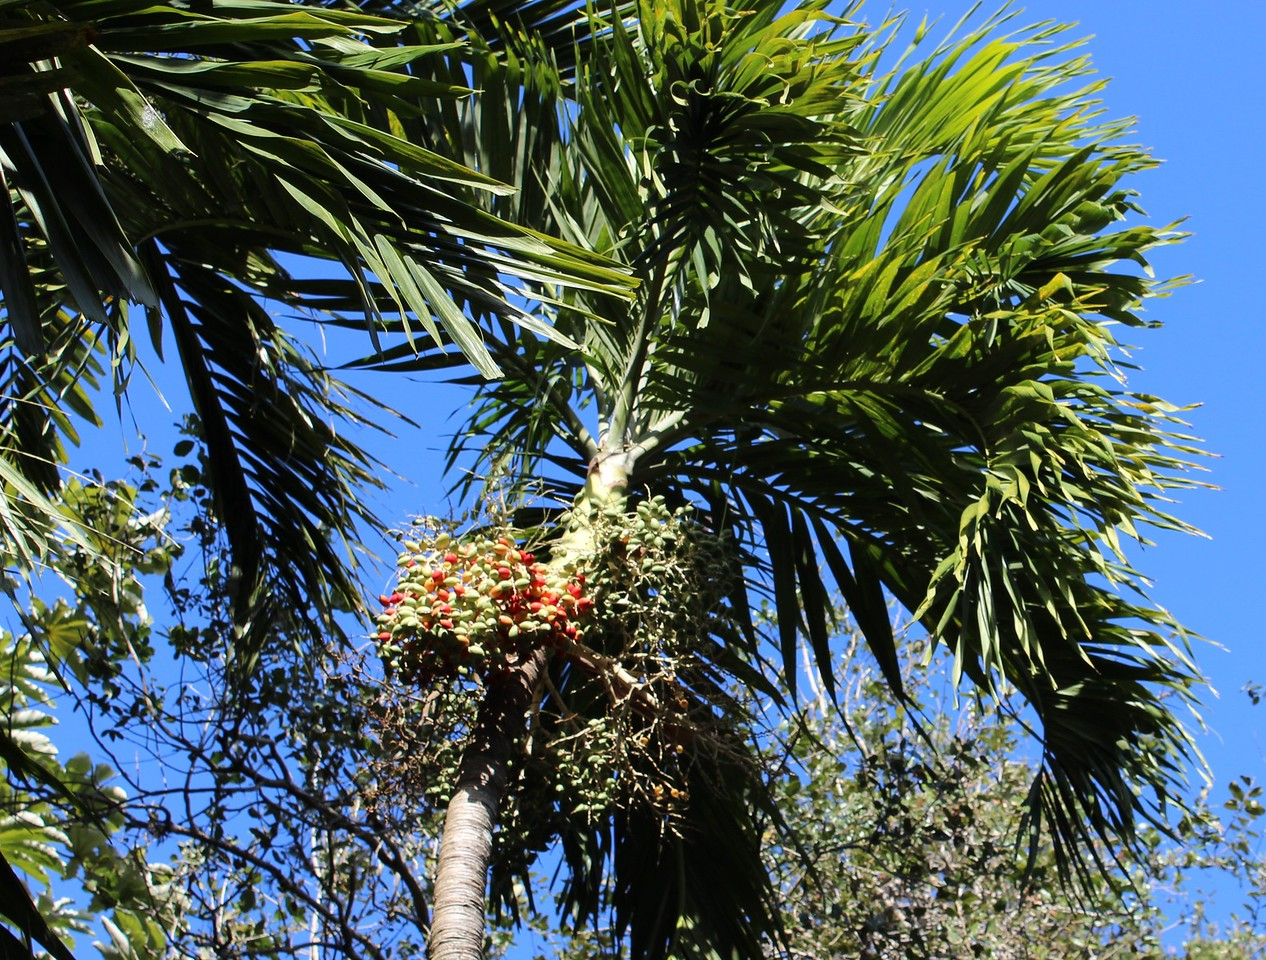 Palm Tree with Fruit